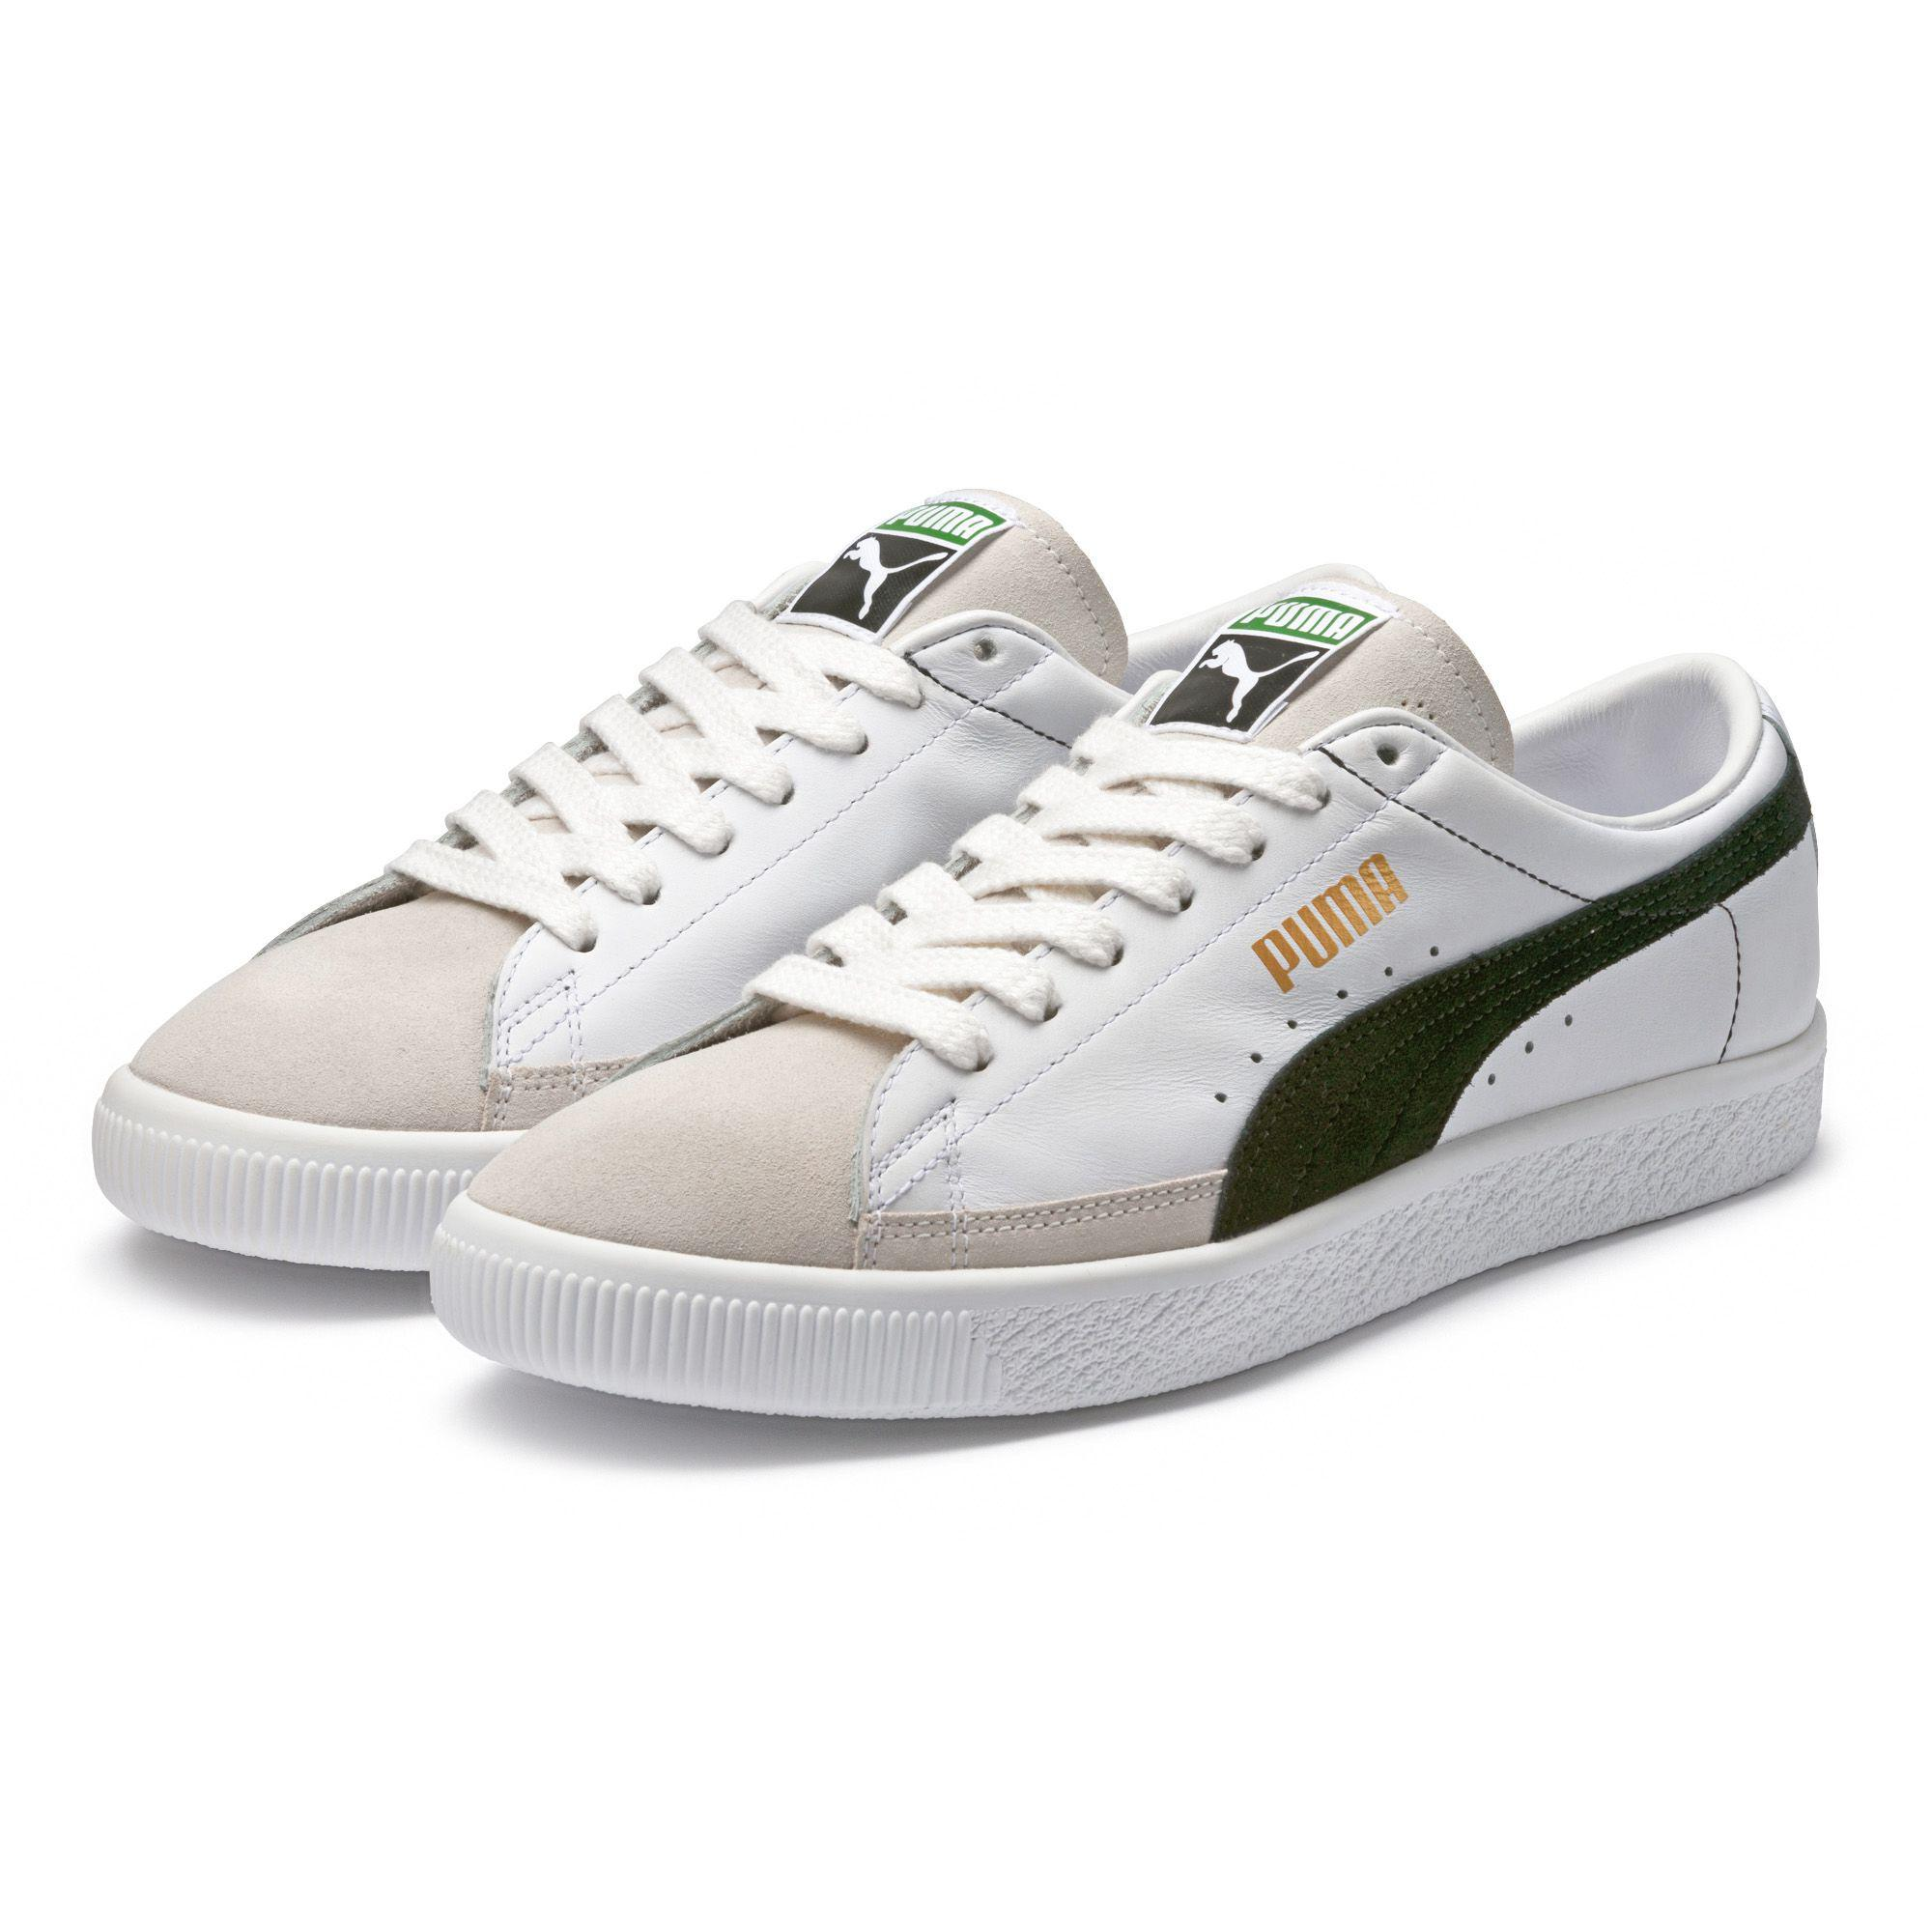 PUMA Leather Basket 90680 Sneakers in White for Men - Lyst